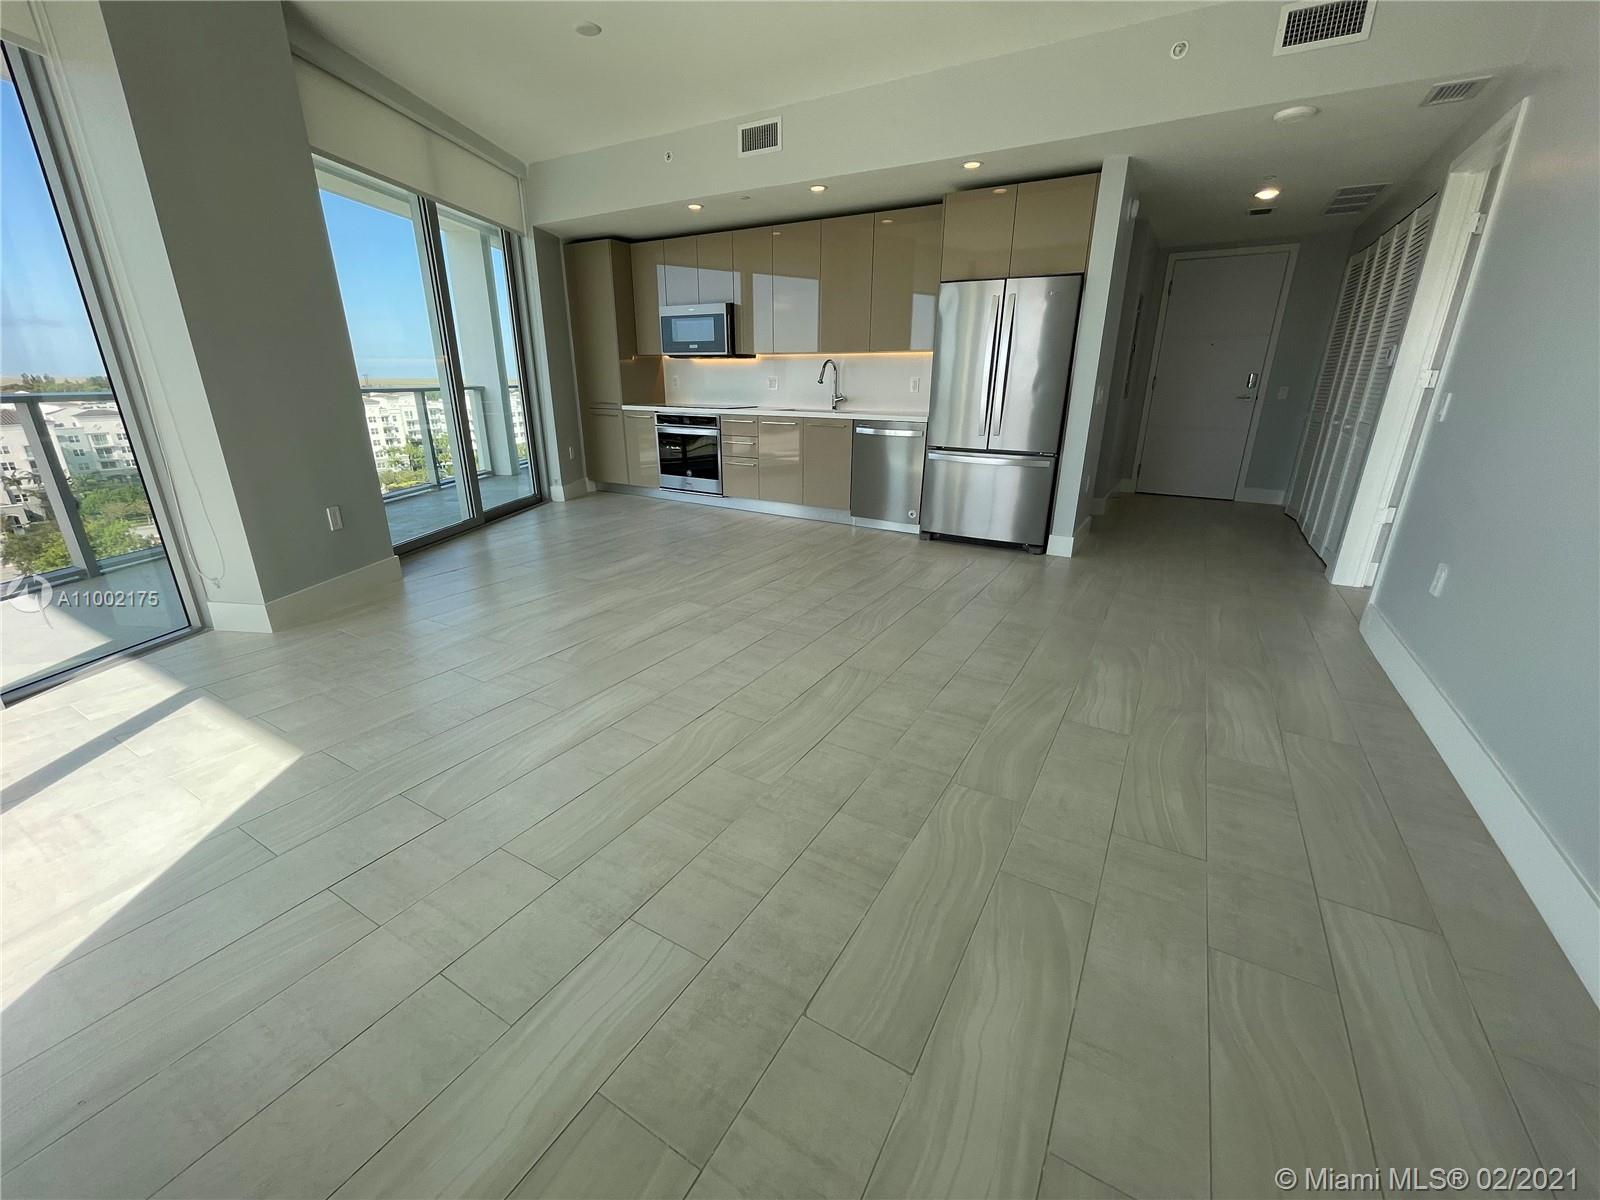 Metropica One #804 - 2000 Metropica Way #804, Sunrise, FL 33323